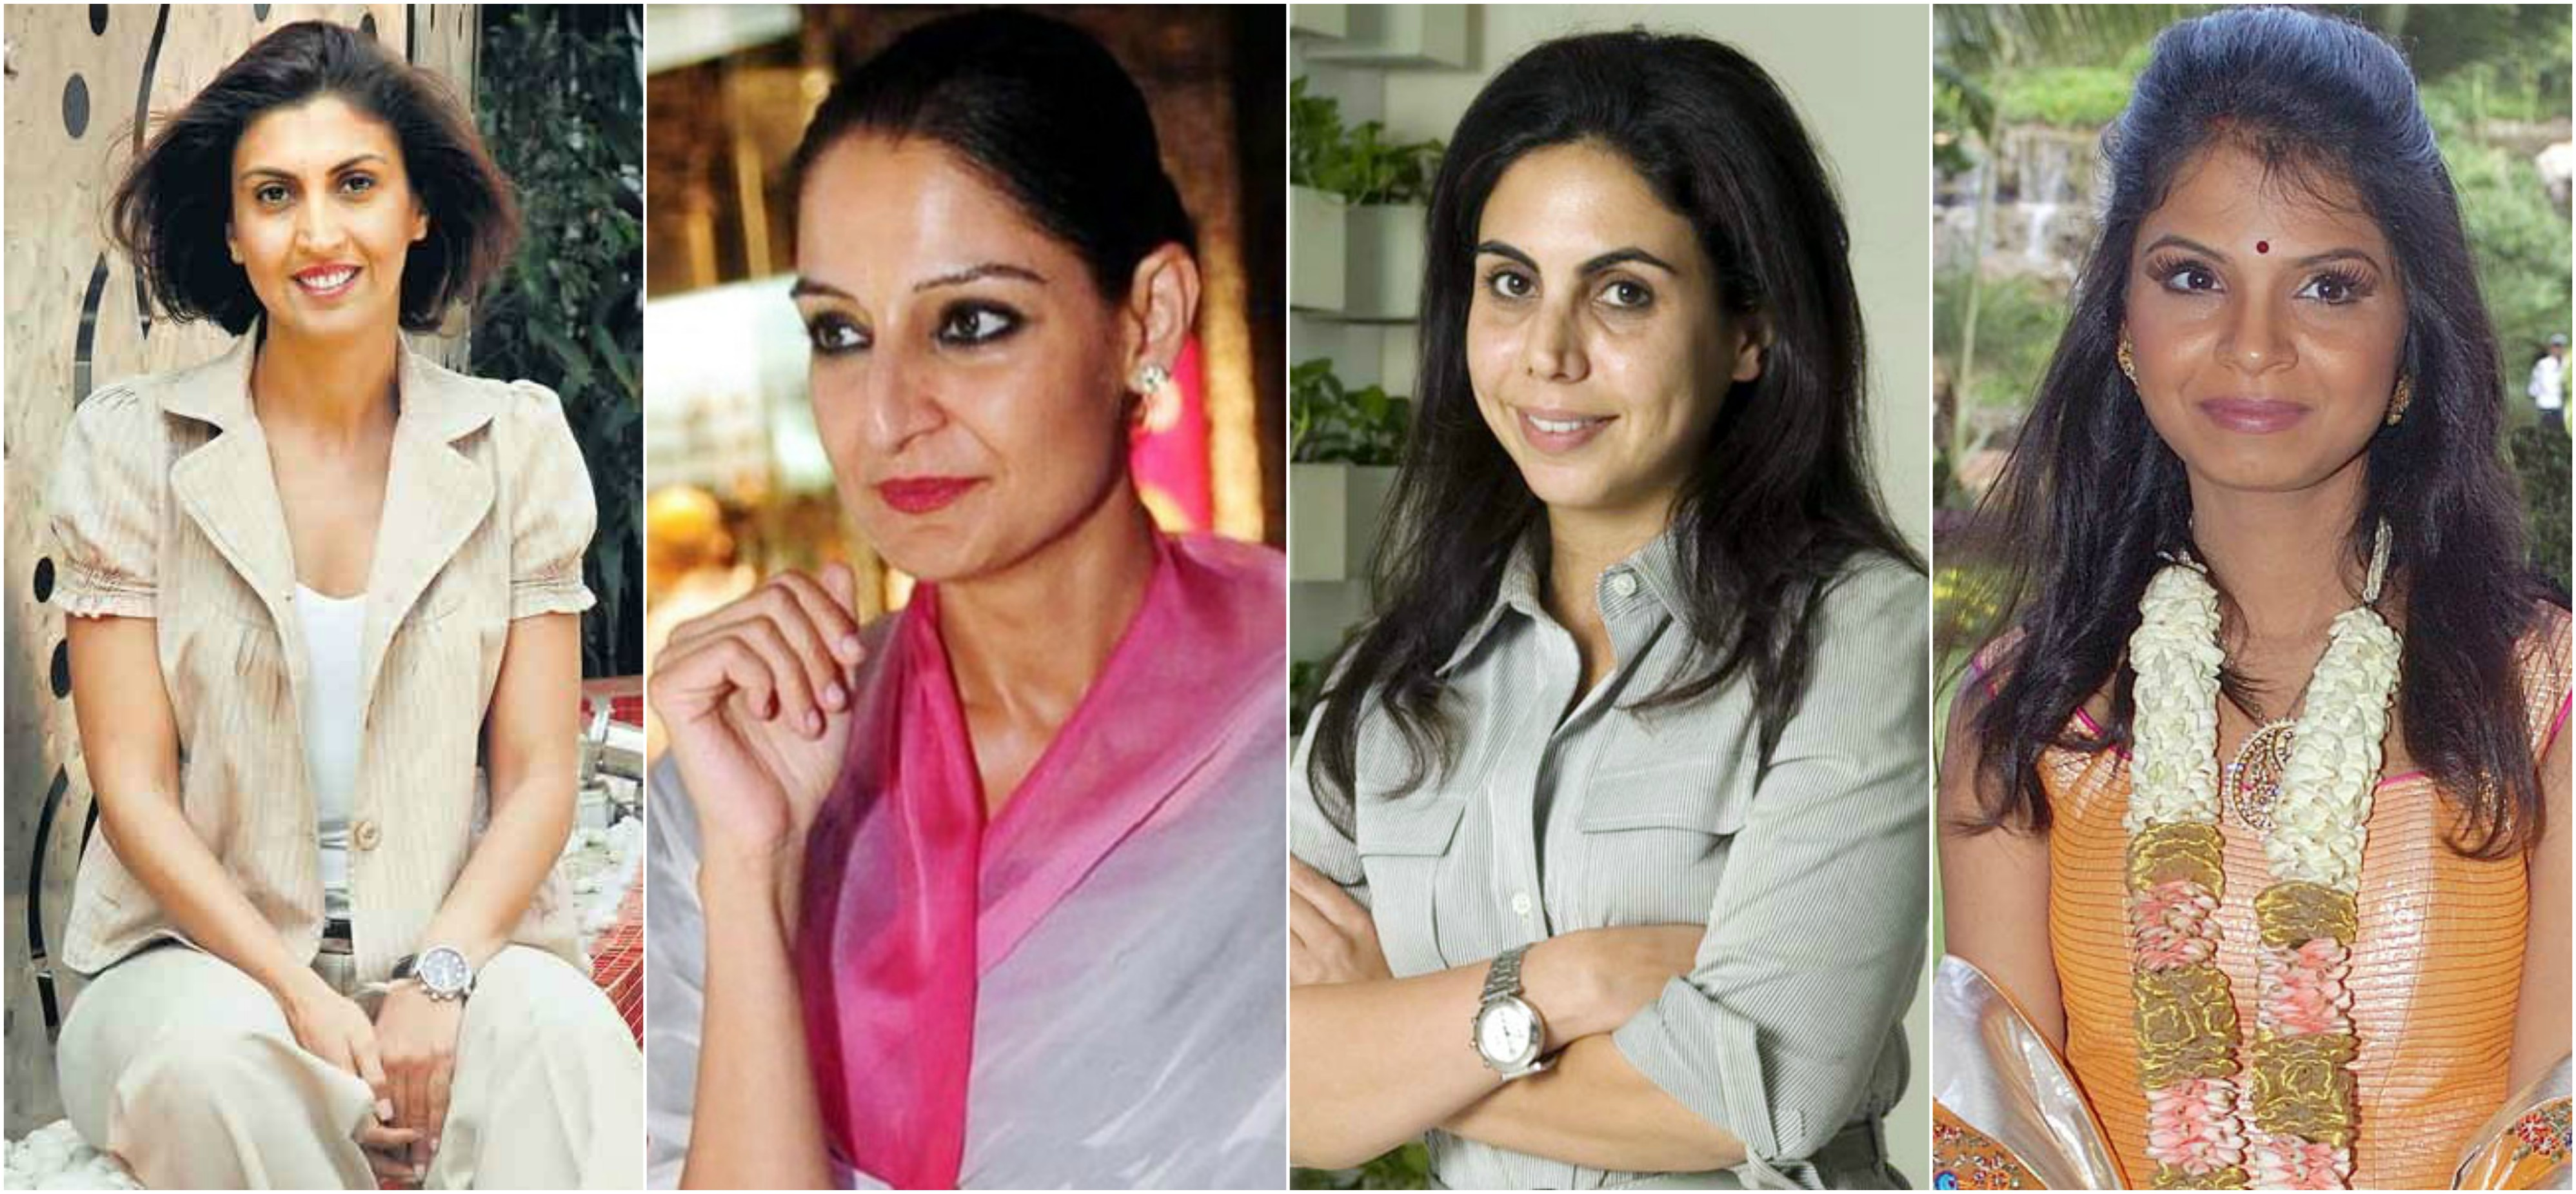 8 Indian Billionaire Daughters Changing The Game Of Their Business Empires